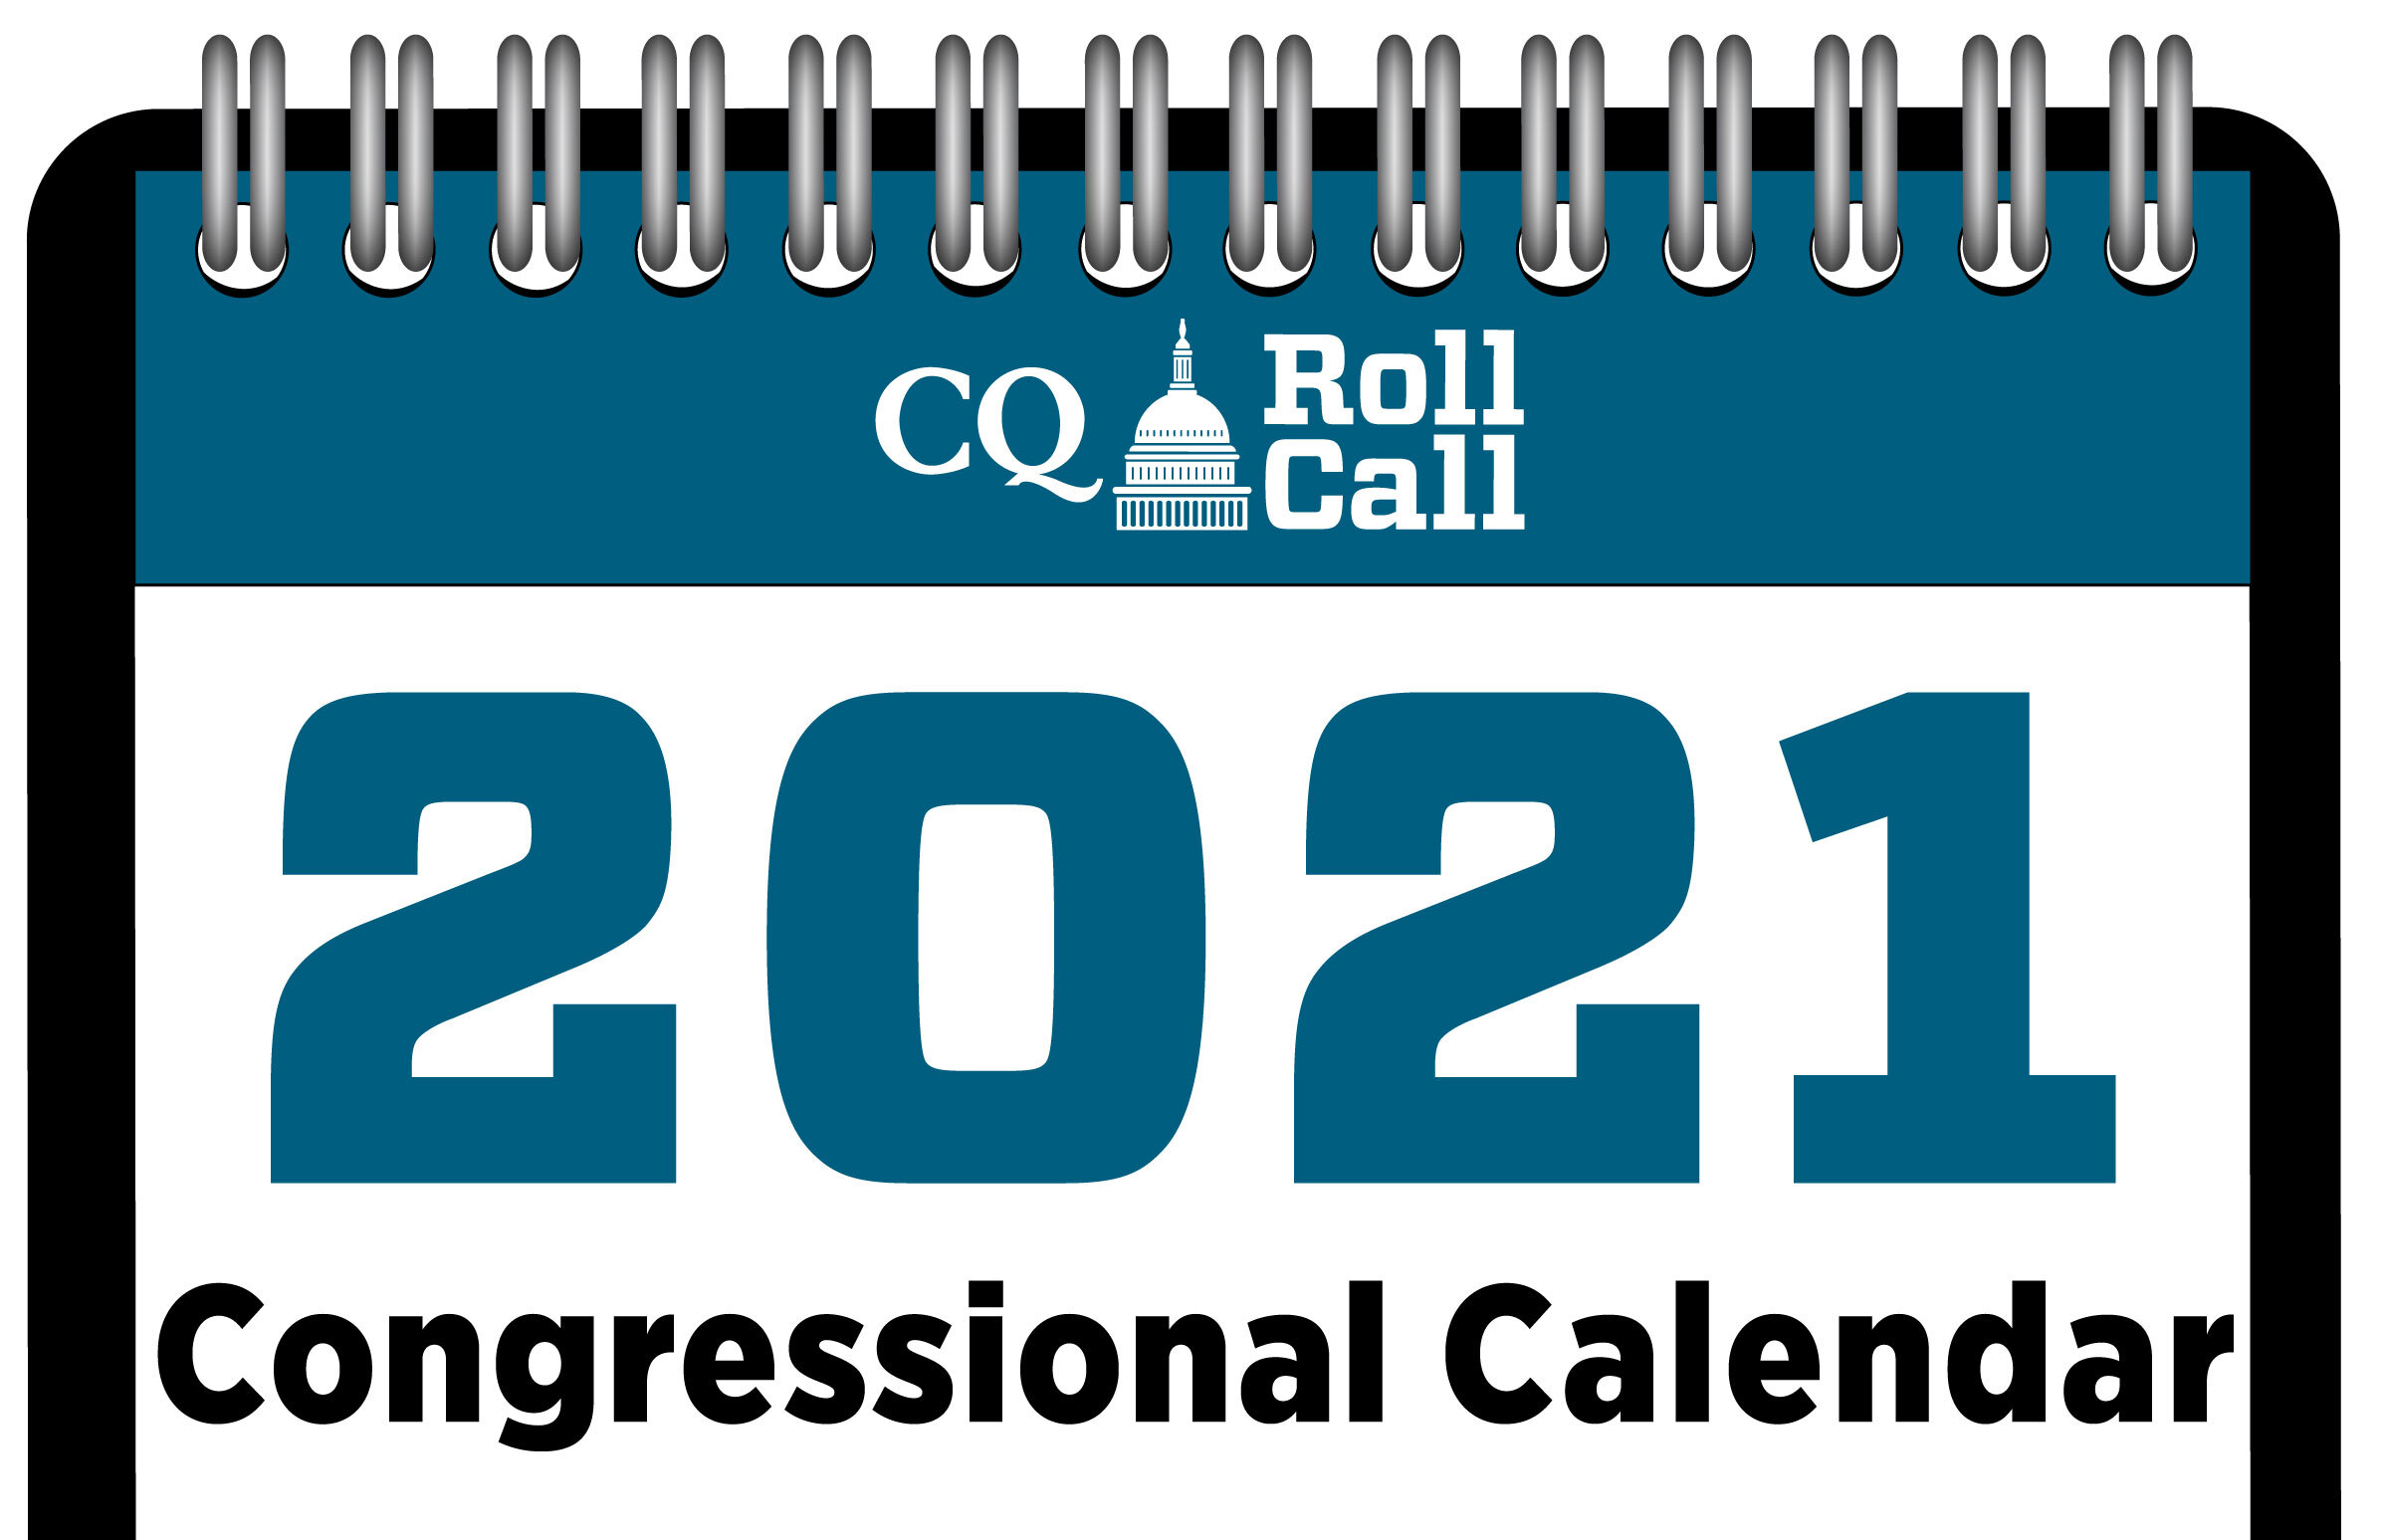 click to view or download the Congressional Calendar